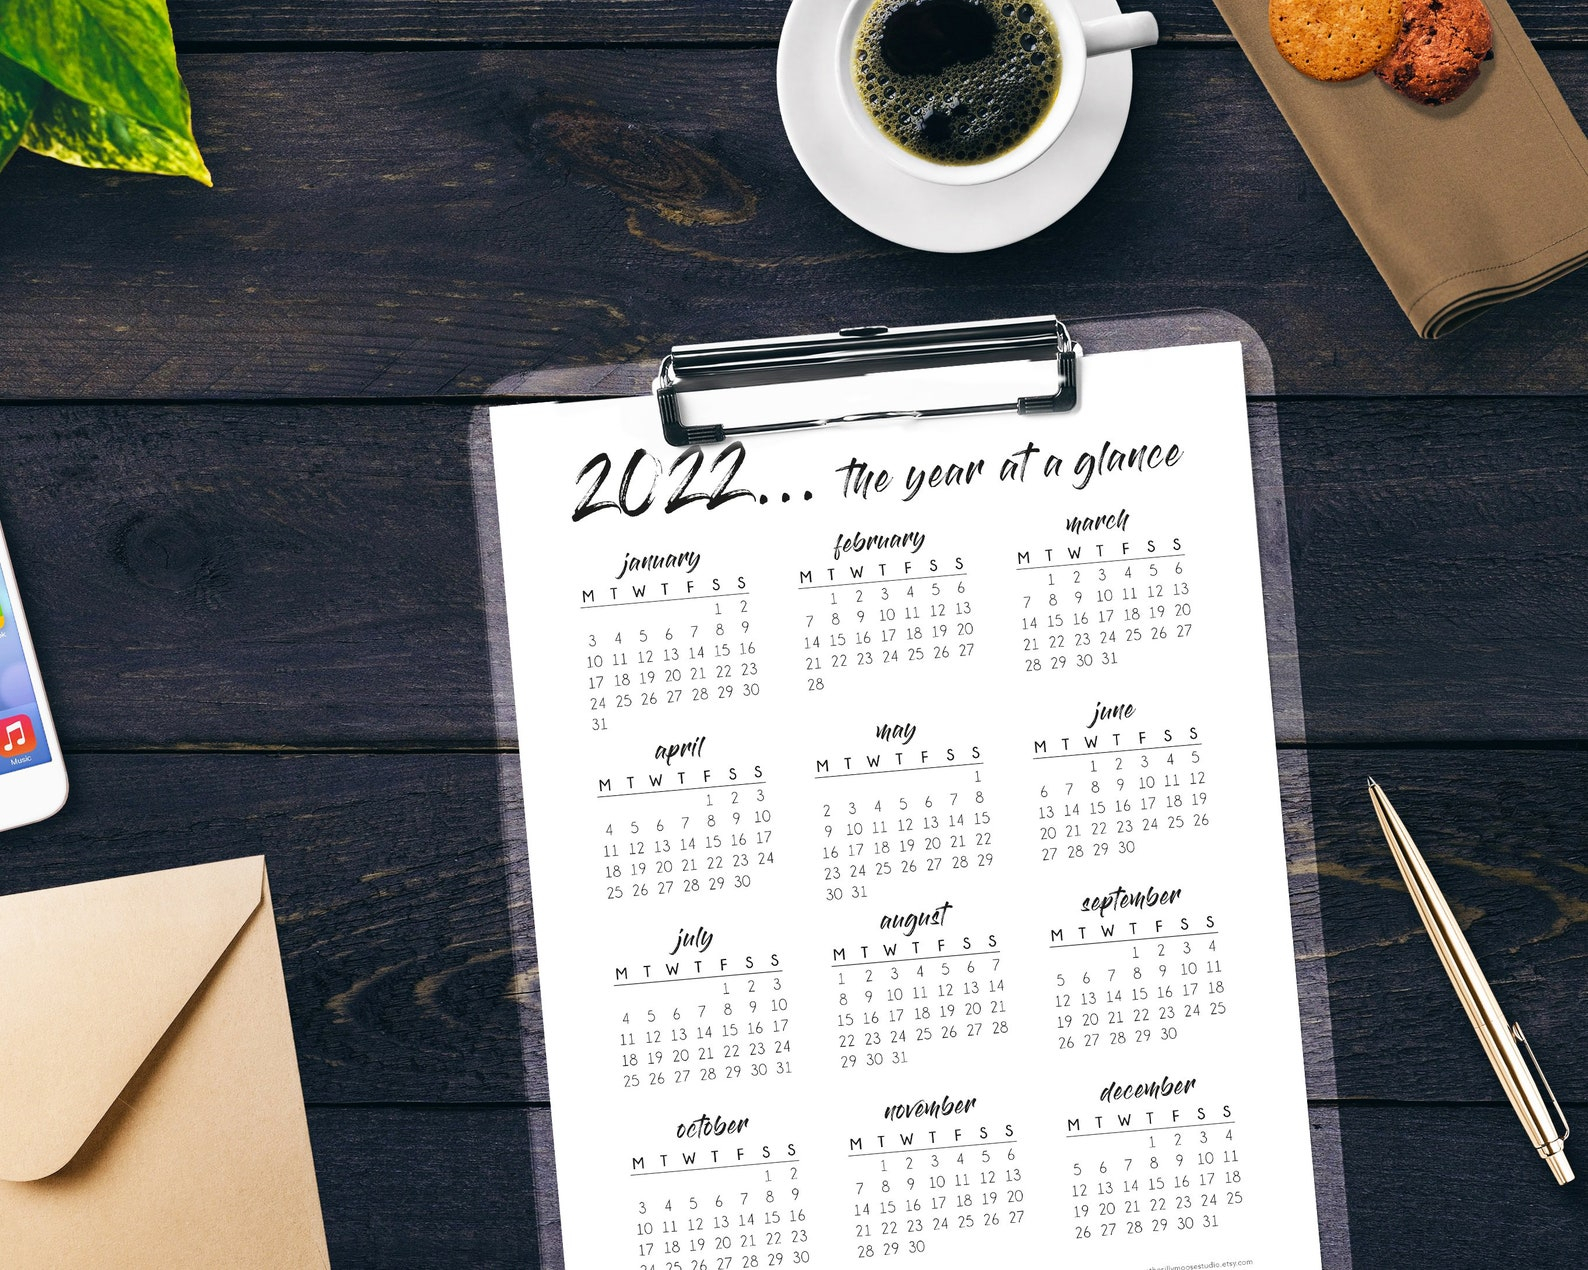 2022 Yearly Calendar Printable Monday Start Year At A | Etsy regarding What Date Does Gcu Start 2022